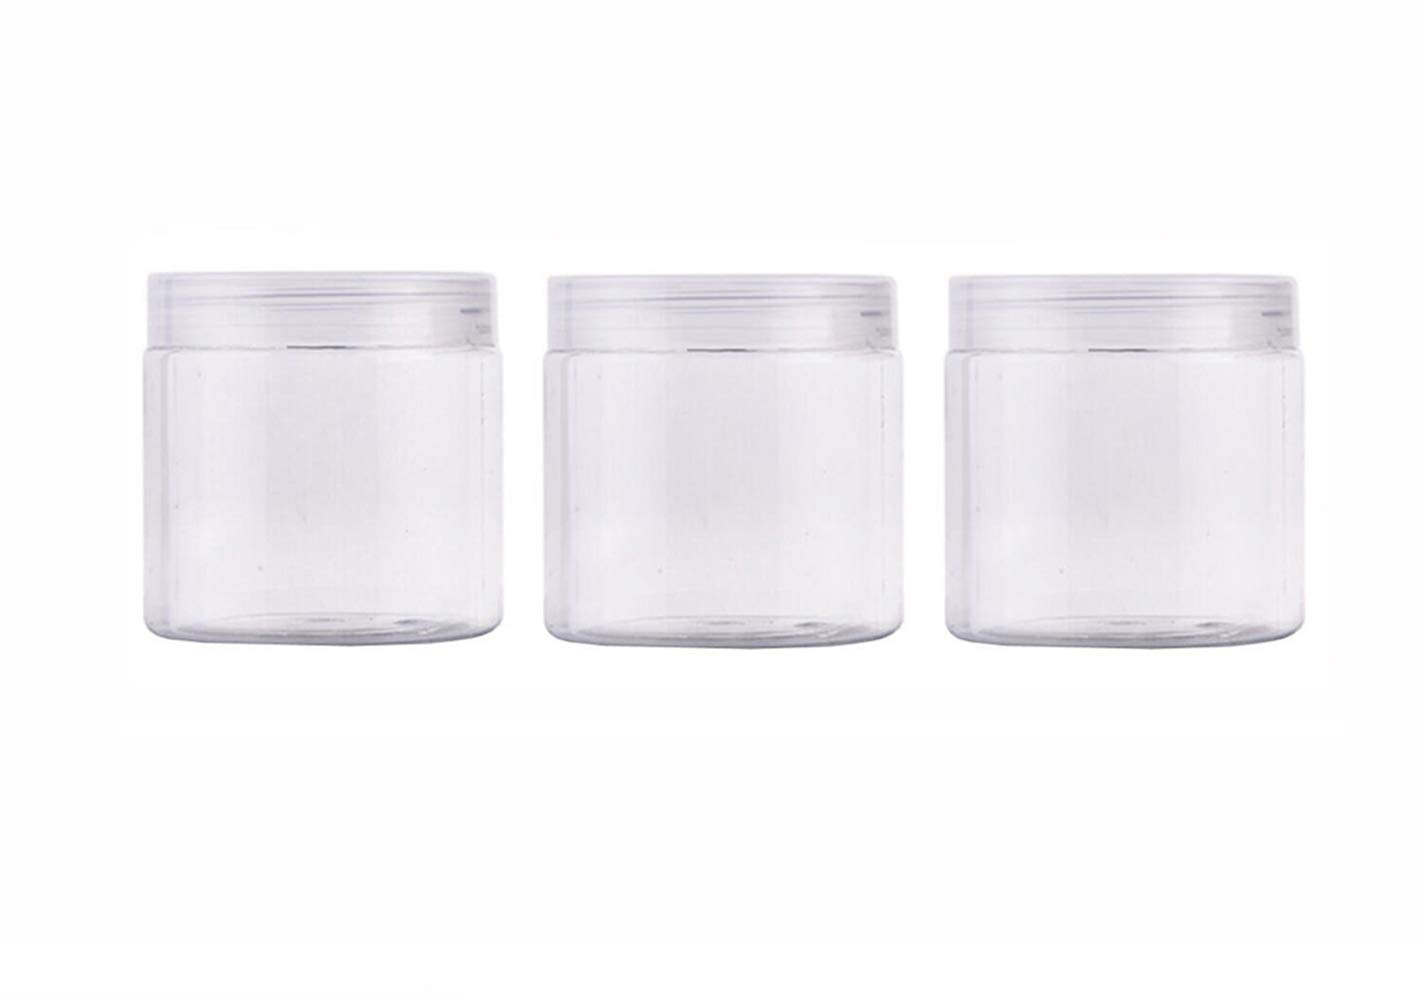 200ml 6.7 Ounce Clear Plastic Round Jars with Lid Empty Cosmetic Containers Bottle Case Pot for Storage Lotion Facial Cream Mask Ointment Tea Pill Food Sample(Pack of 3)